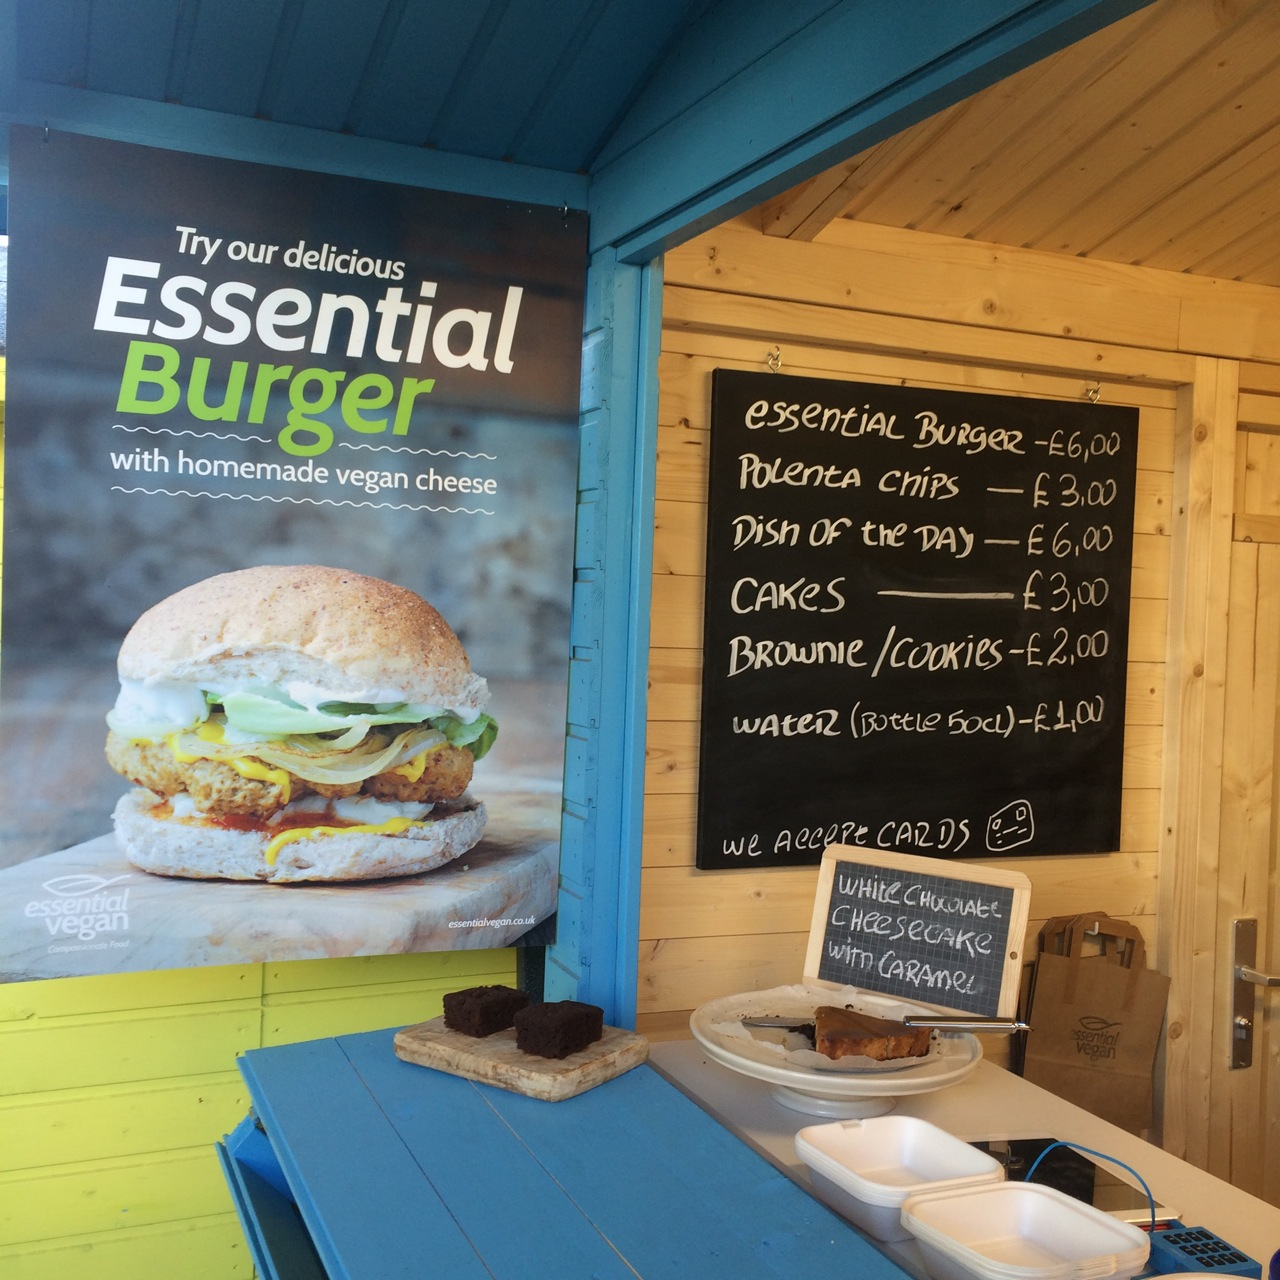 https://i0.wp.com/fatgayvegan.com/wp-content/uploads/2015/06/essential-vegan-burger-shoreditch-menu.jpg?fit=1280%2C1280